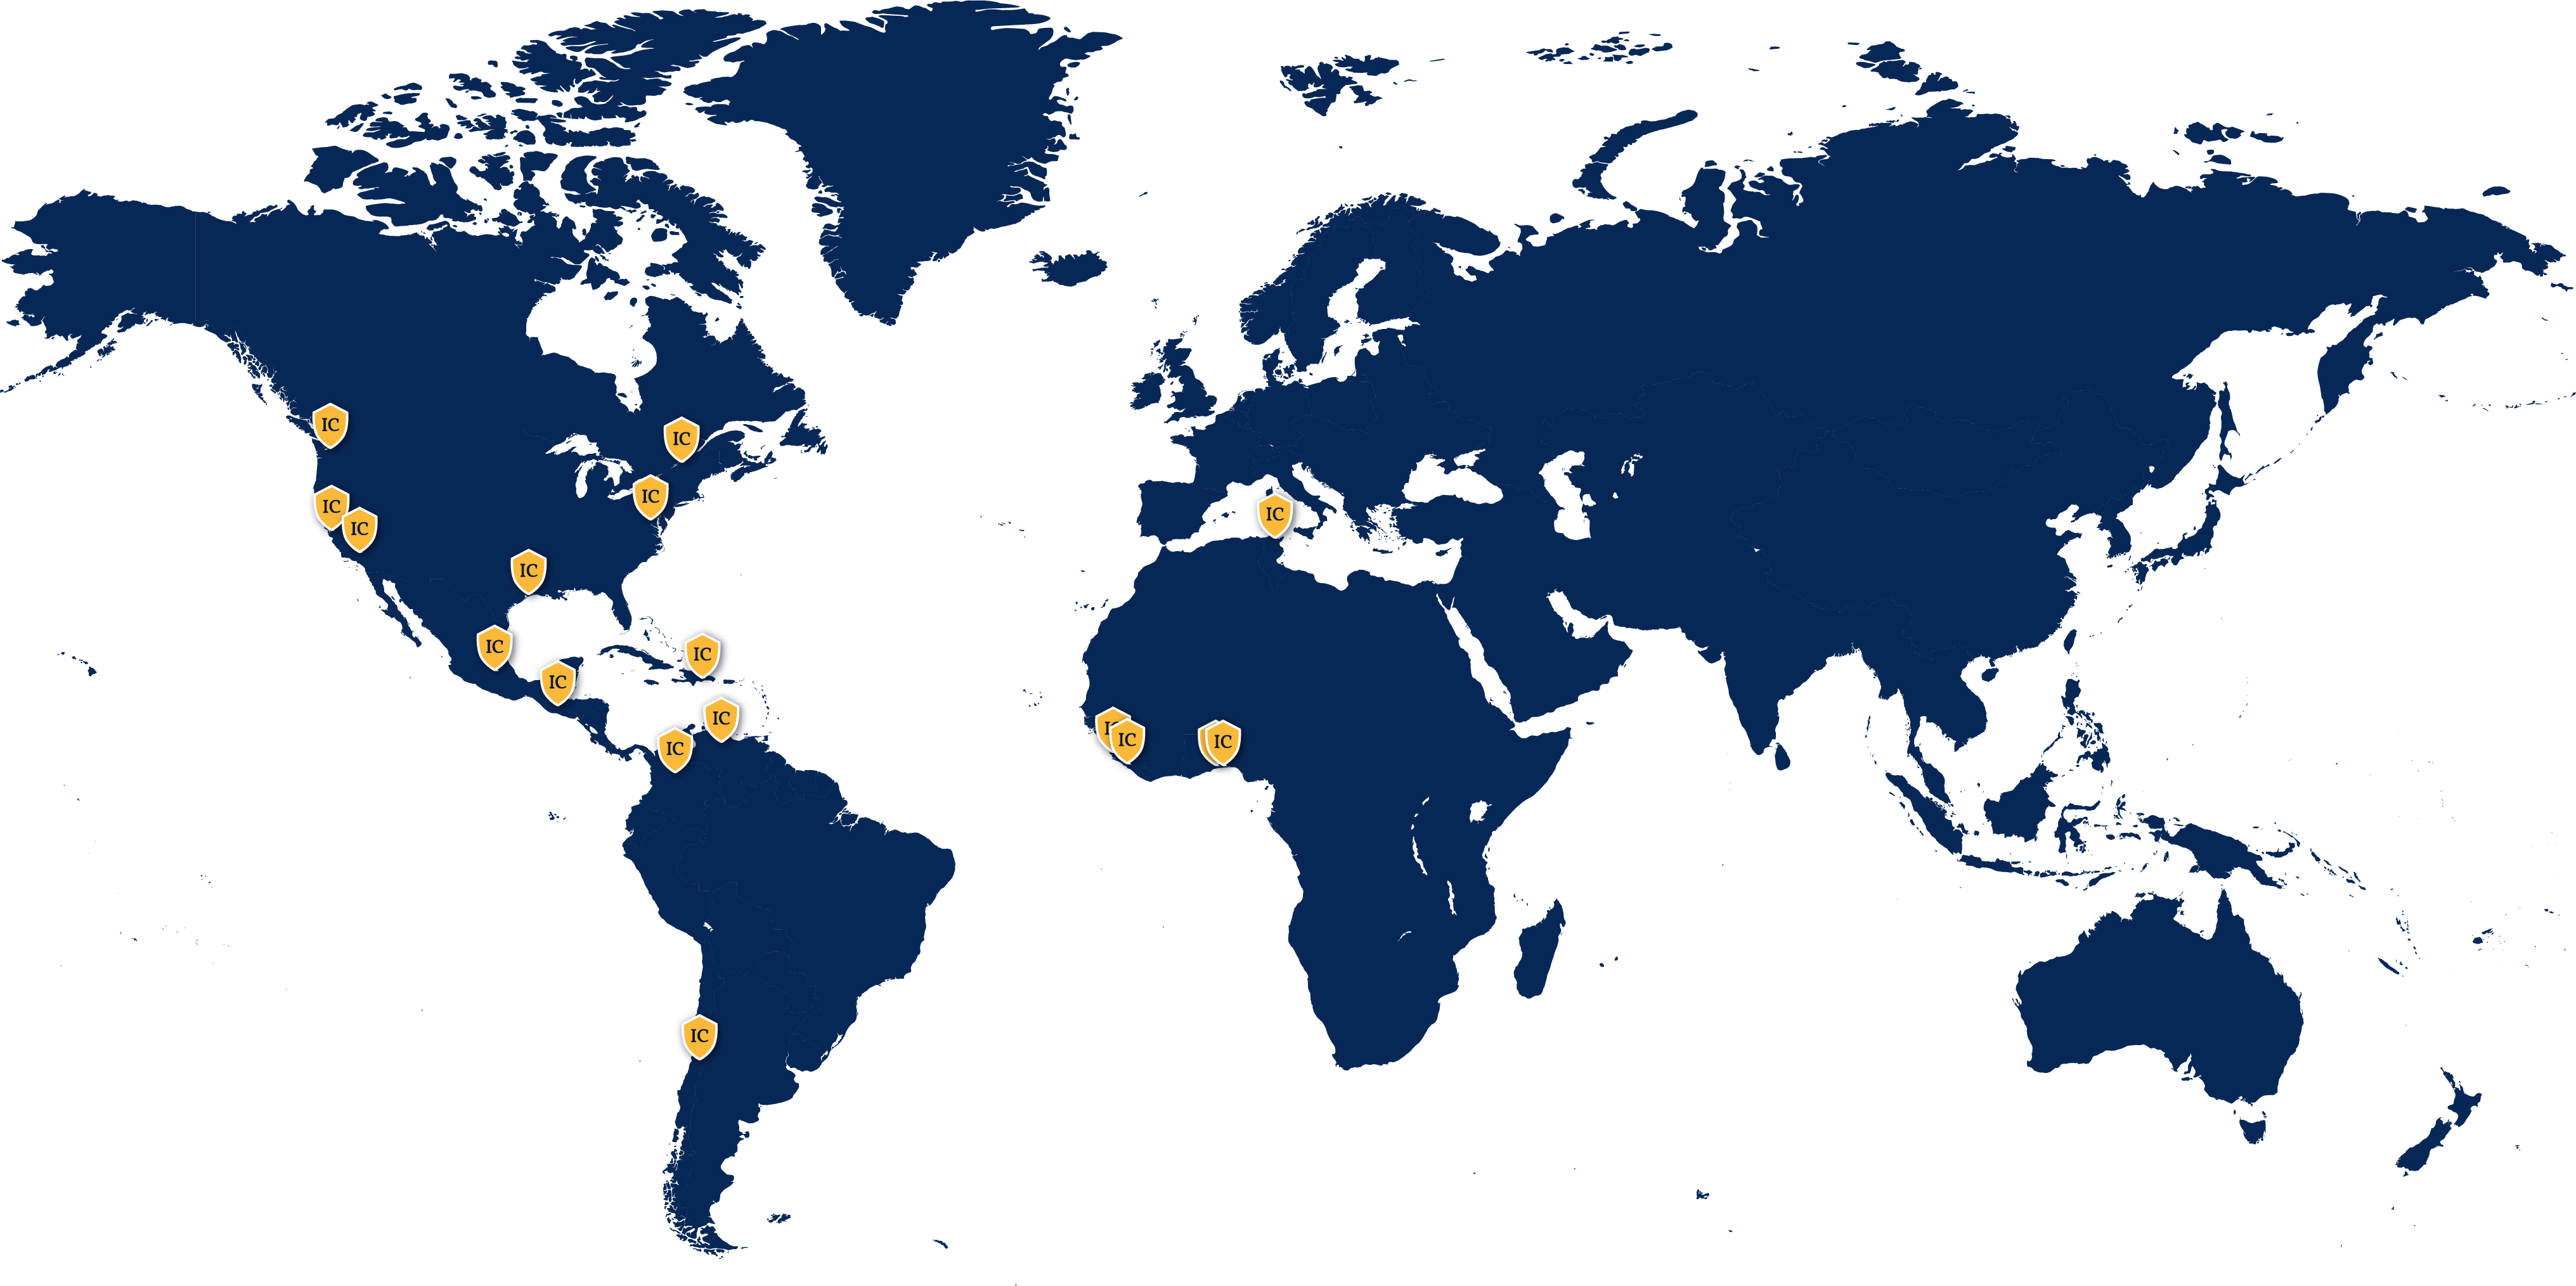 World map with labeled Inter-Con Headquarters